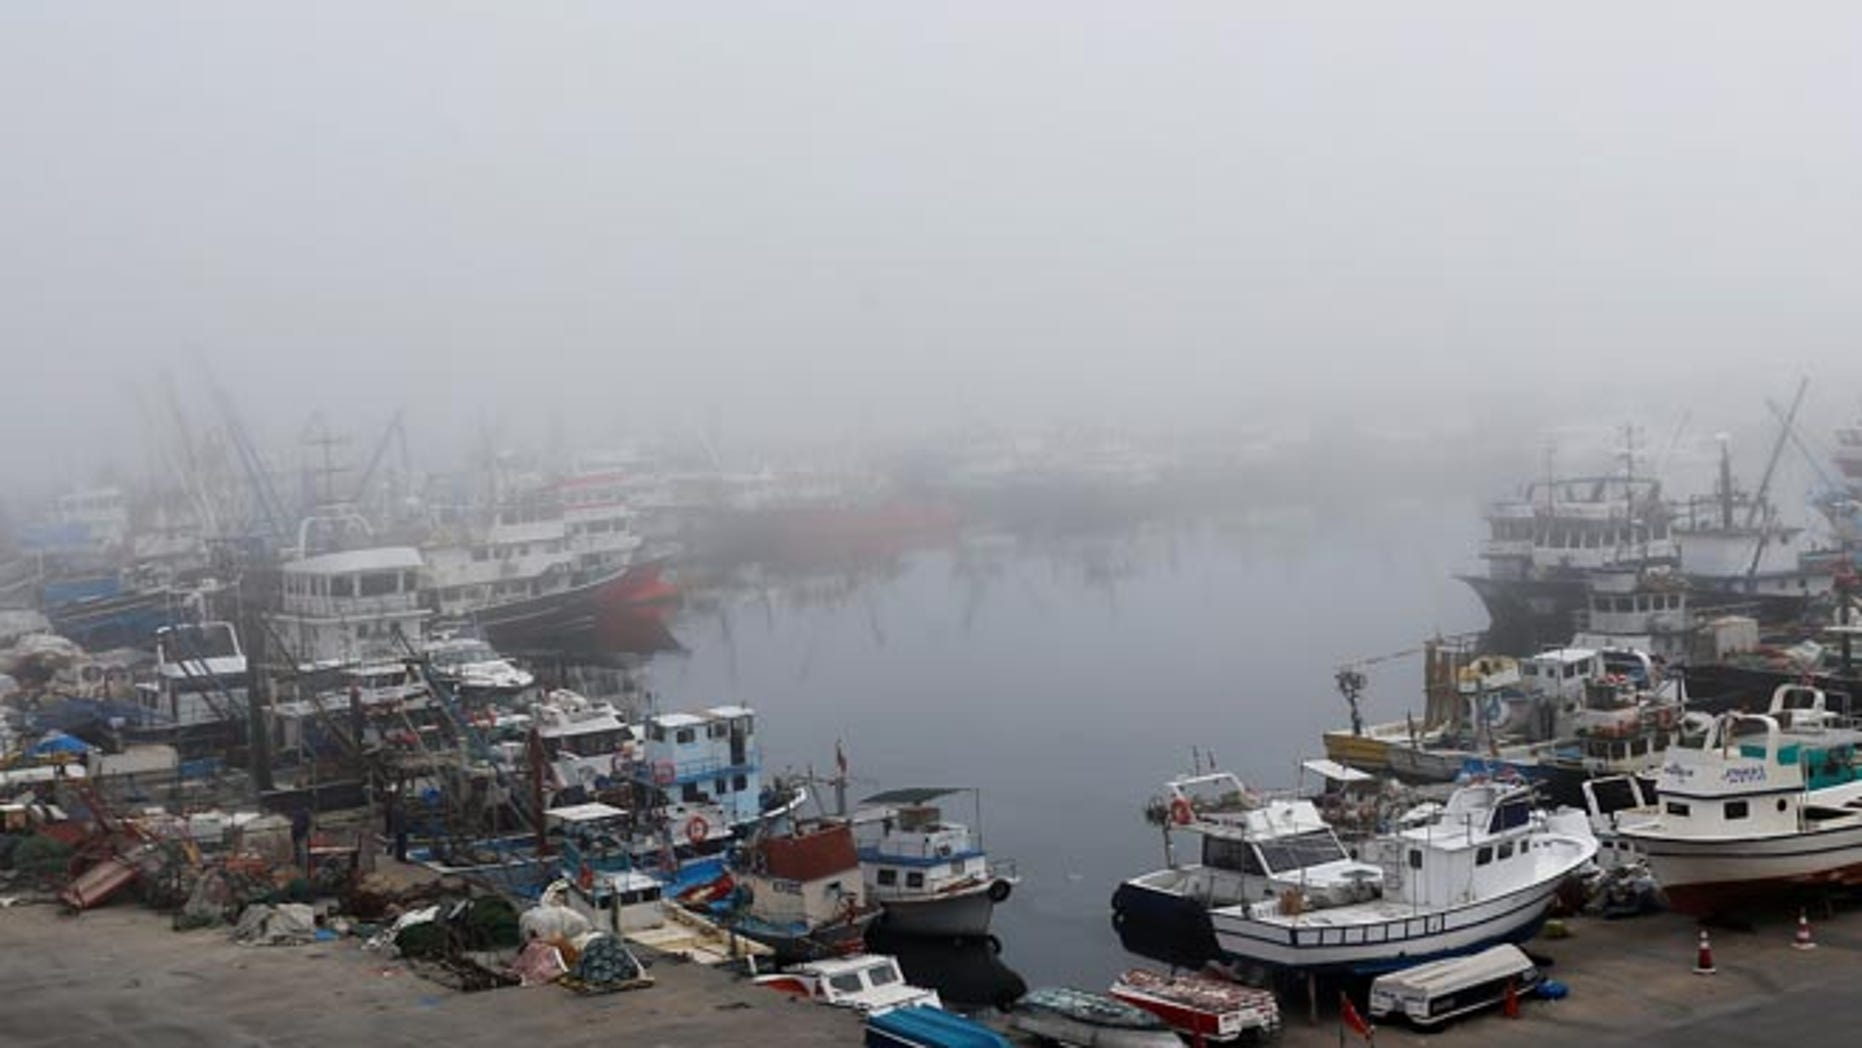 Boats seen in the fog-covered Rumelifeneri village port at the Black Sea on Thursday, the same day a Russian ship sank off the coast.